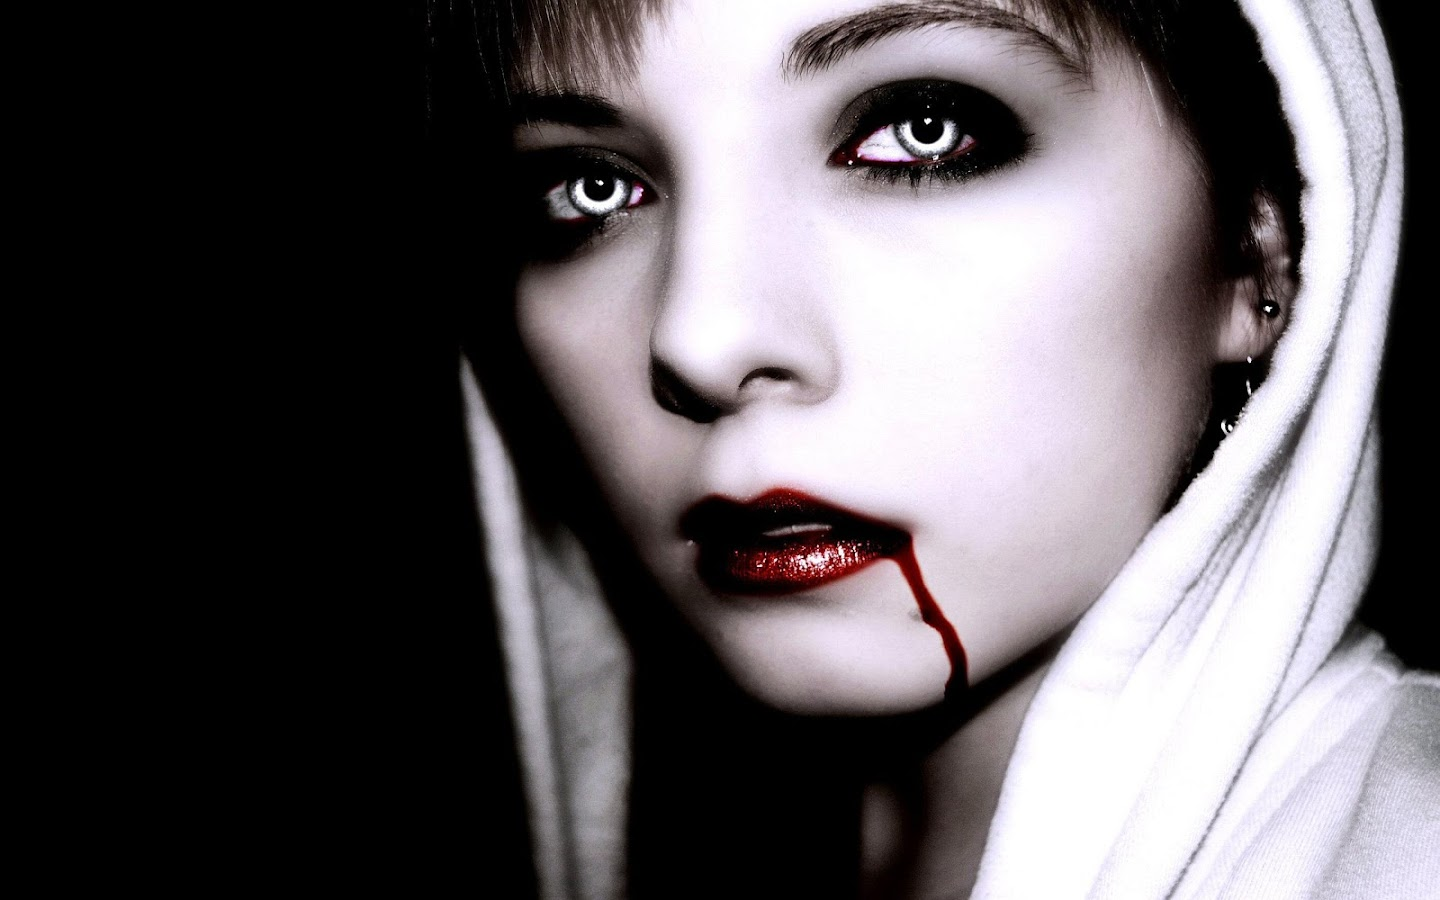 Vampire Wallpapers HD - screenshot